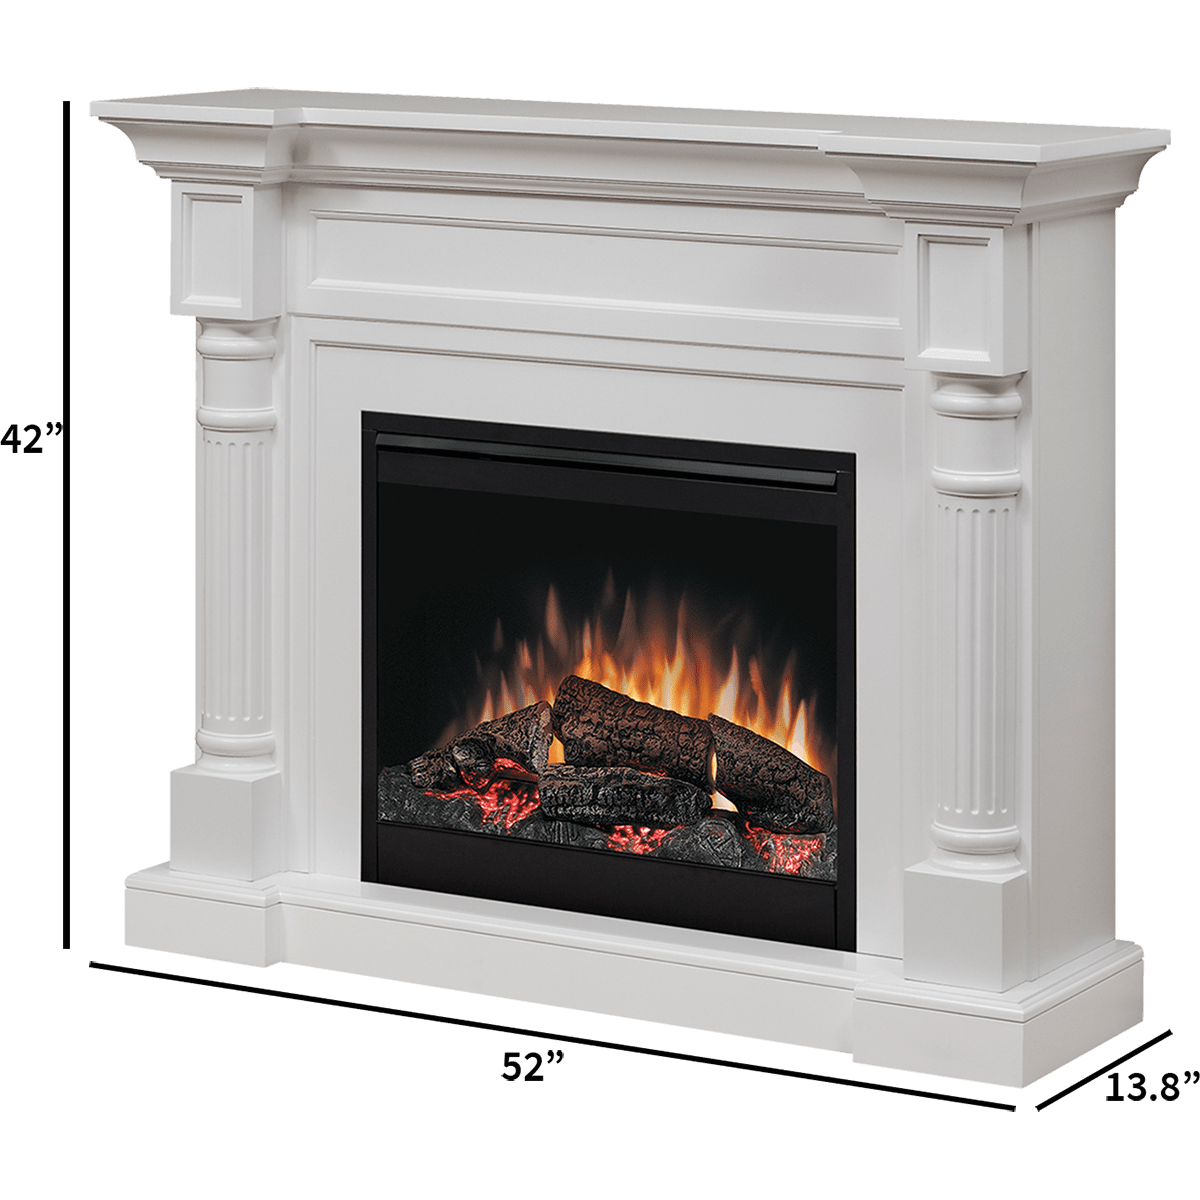 Swell Dimplex Winston Electric Fireplace Dfp26 1109W Interior Design Ideas Clesiryabchikinfo